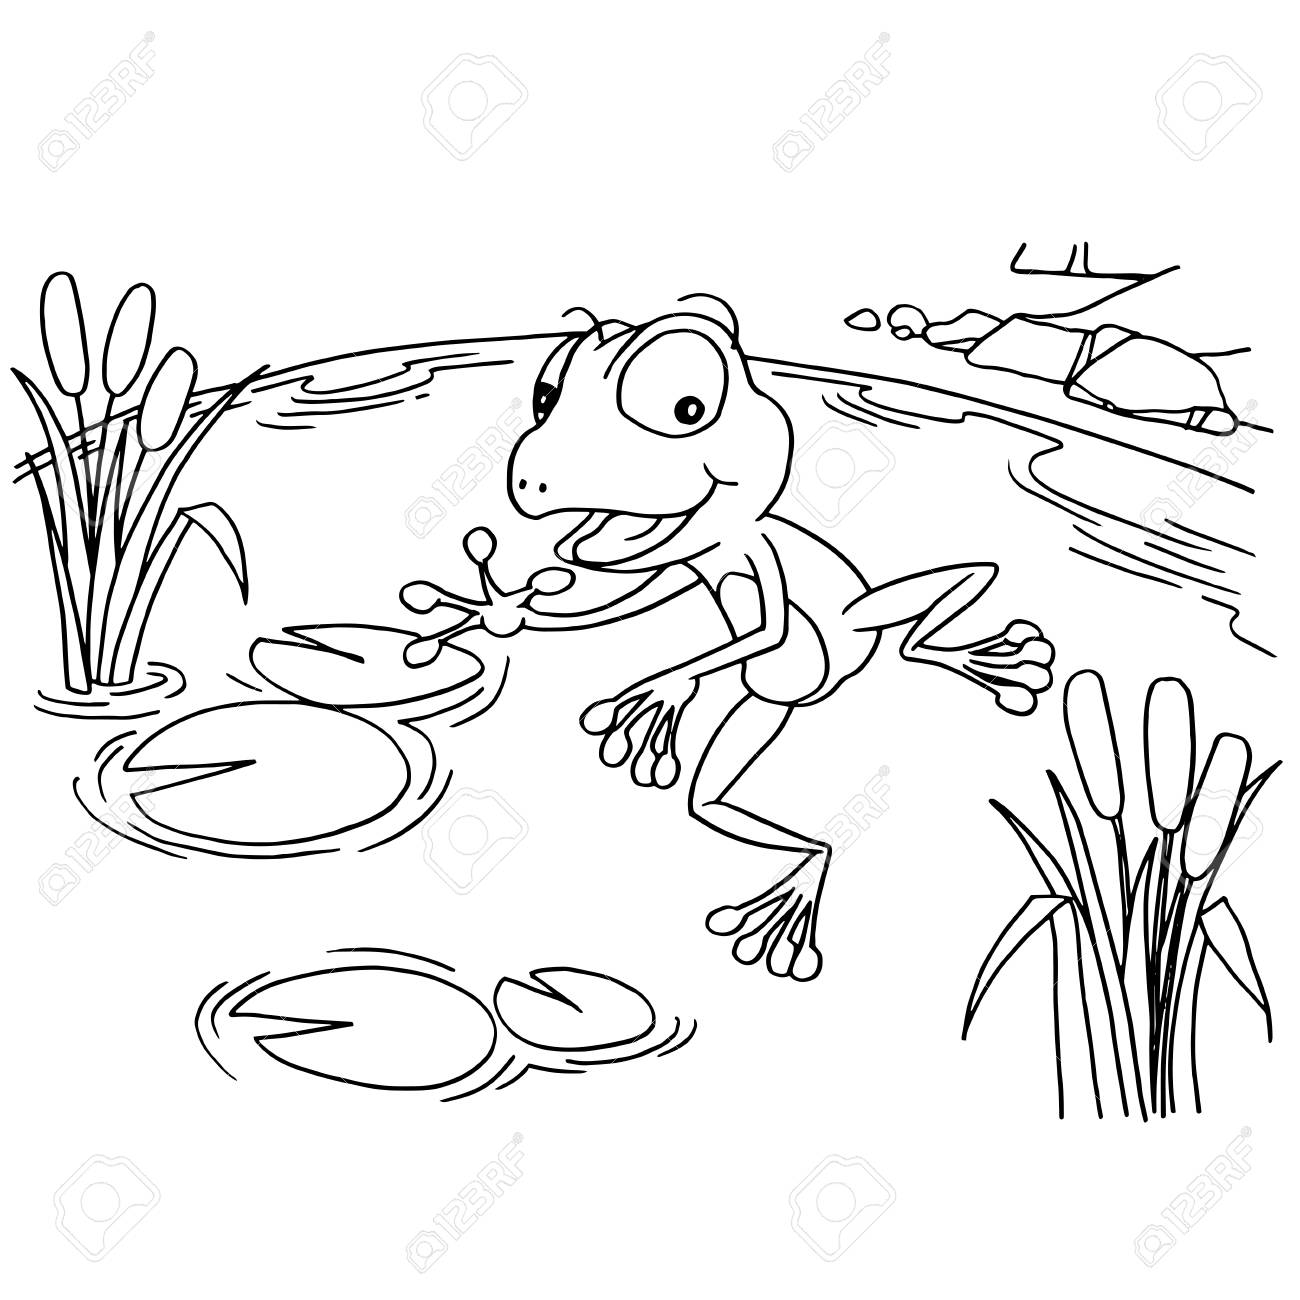 Cartoon Frog At Lake Coloring Page Vector Illustration Royalty Free ...